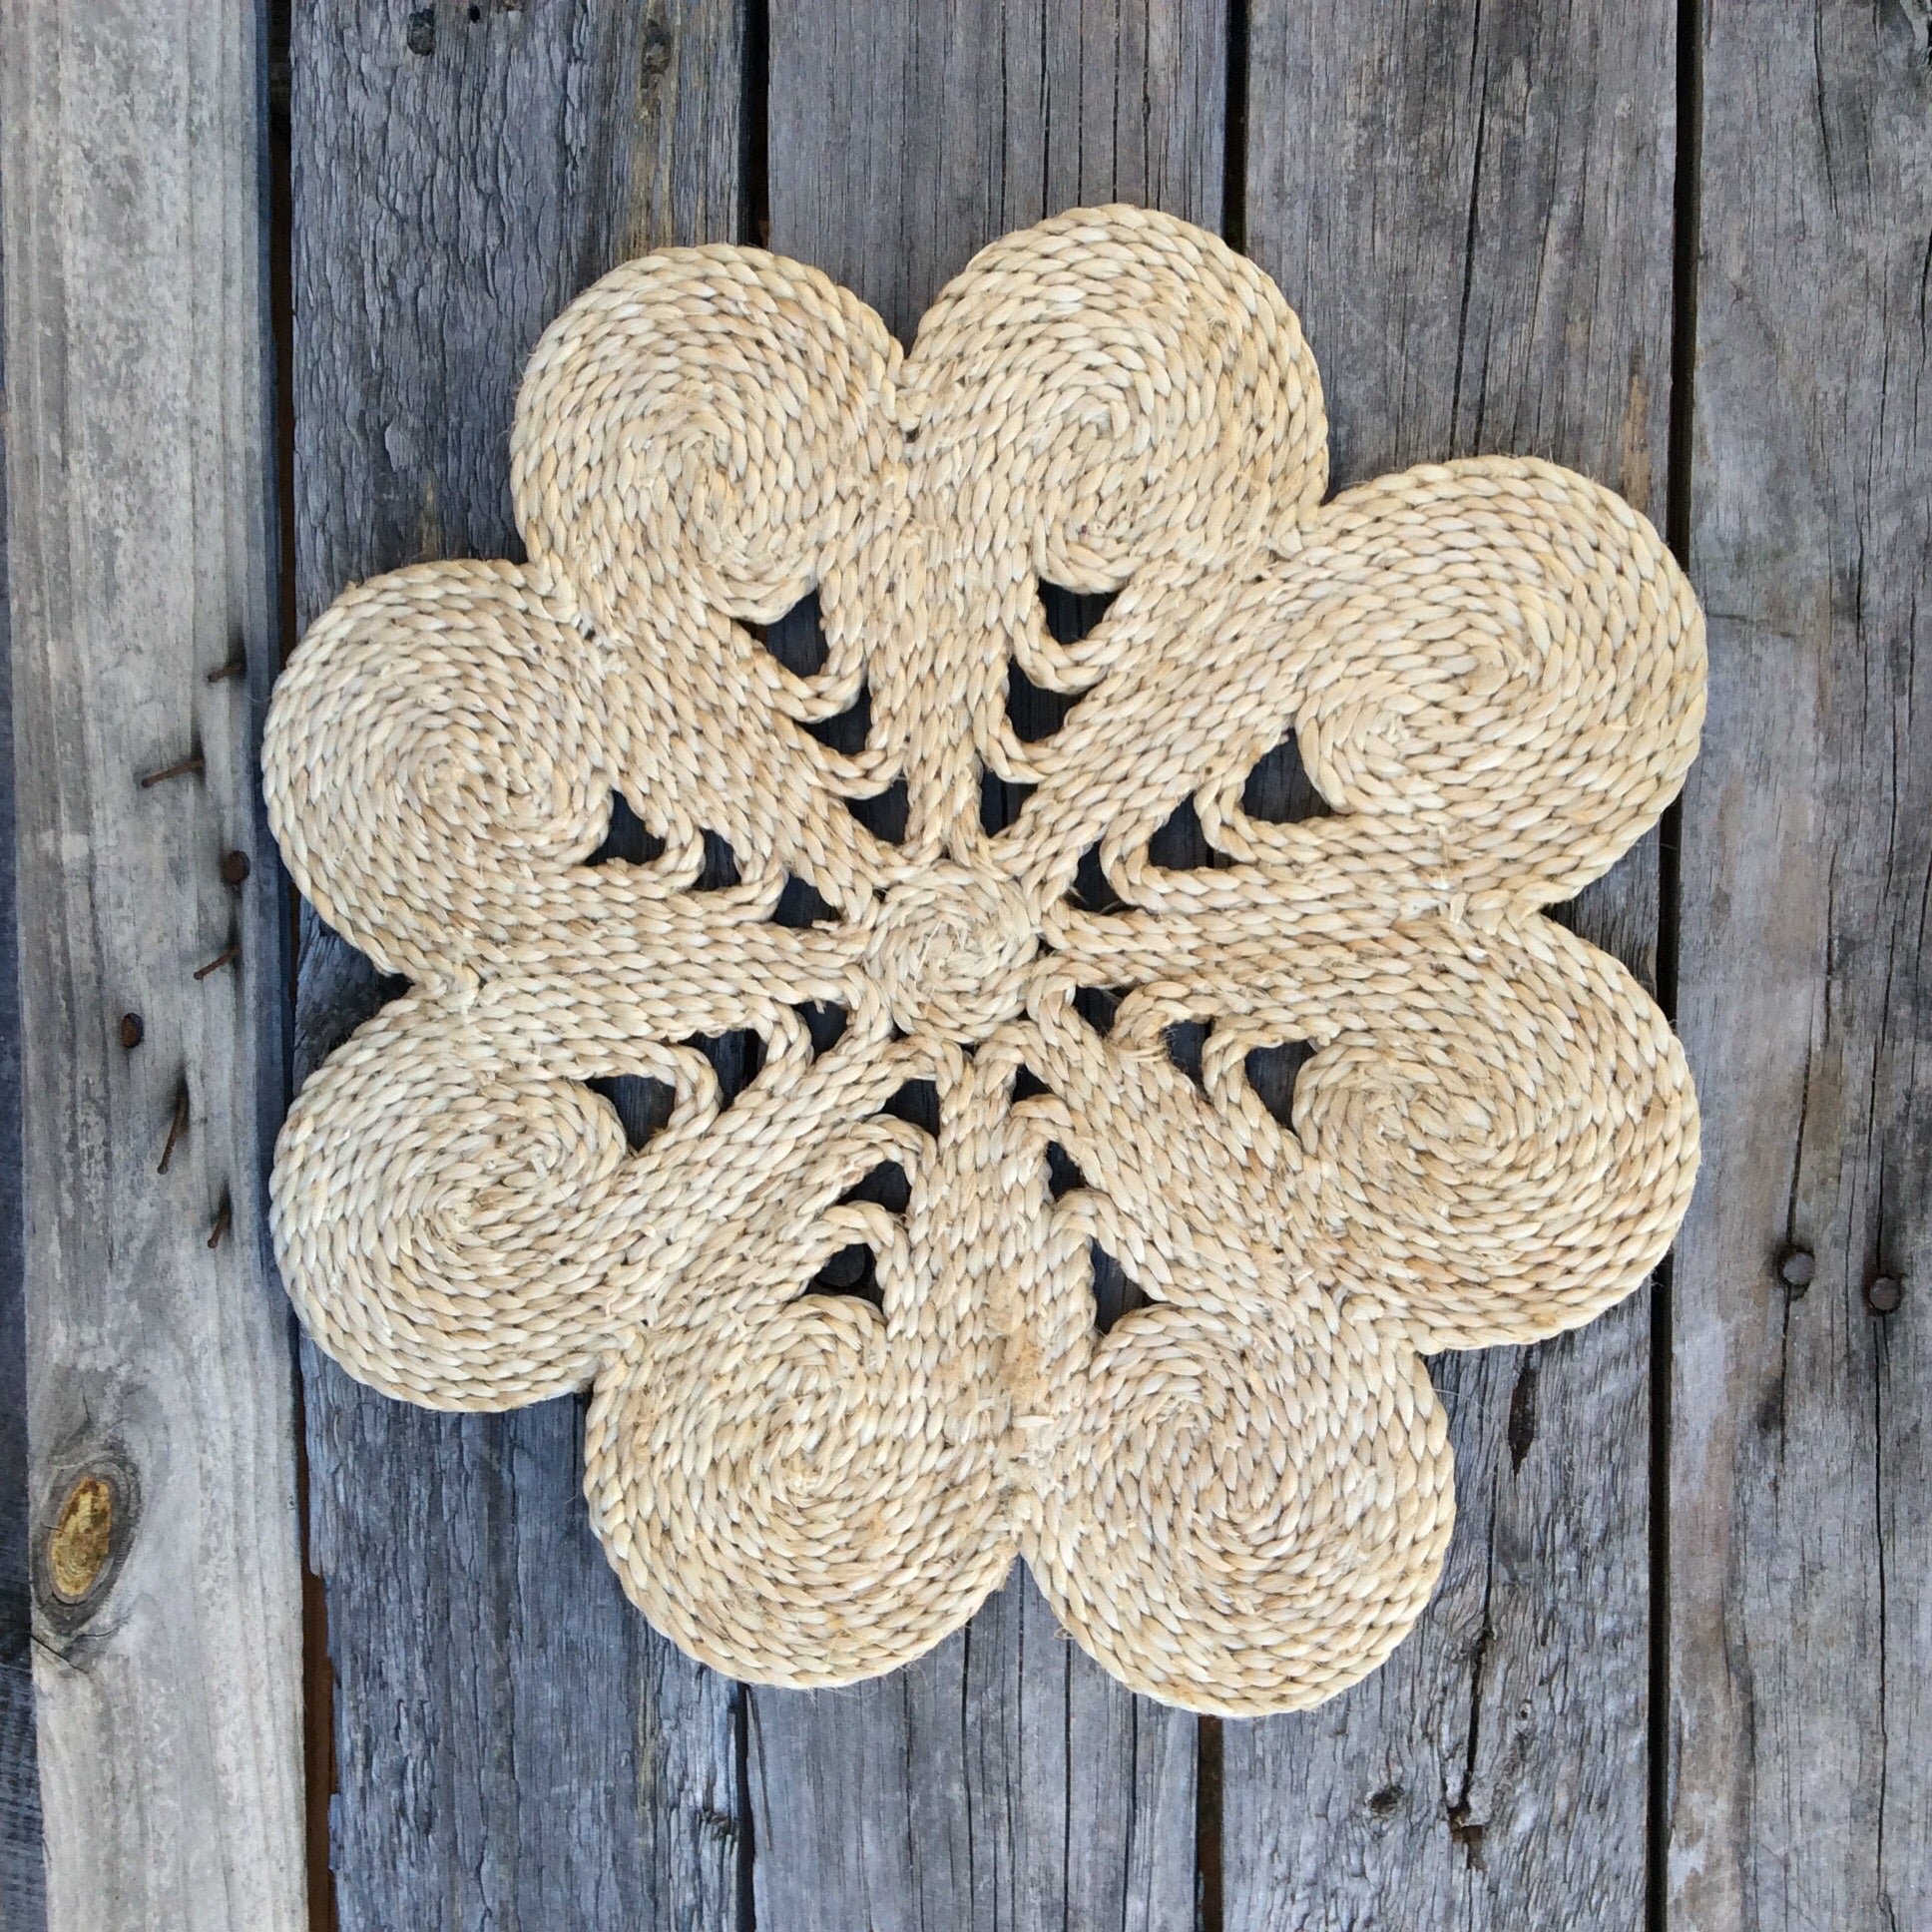 Fair Trade Ethical Jute Table Mat Cream in Flower Design